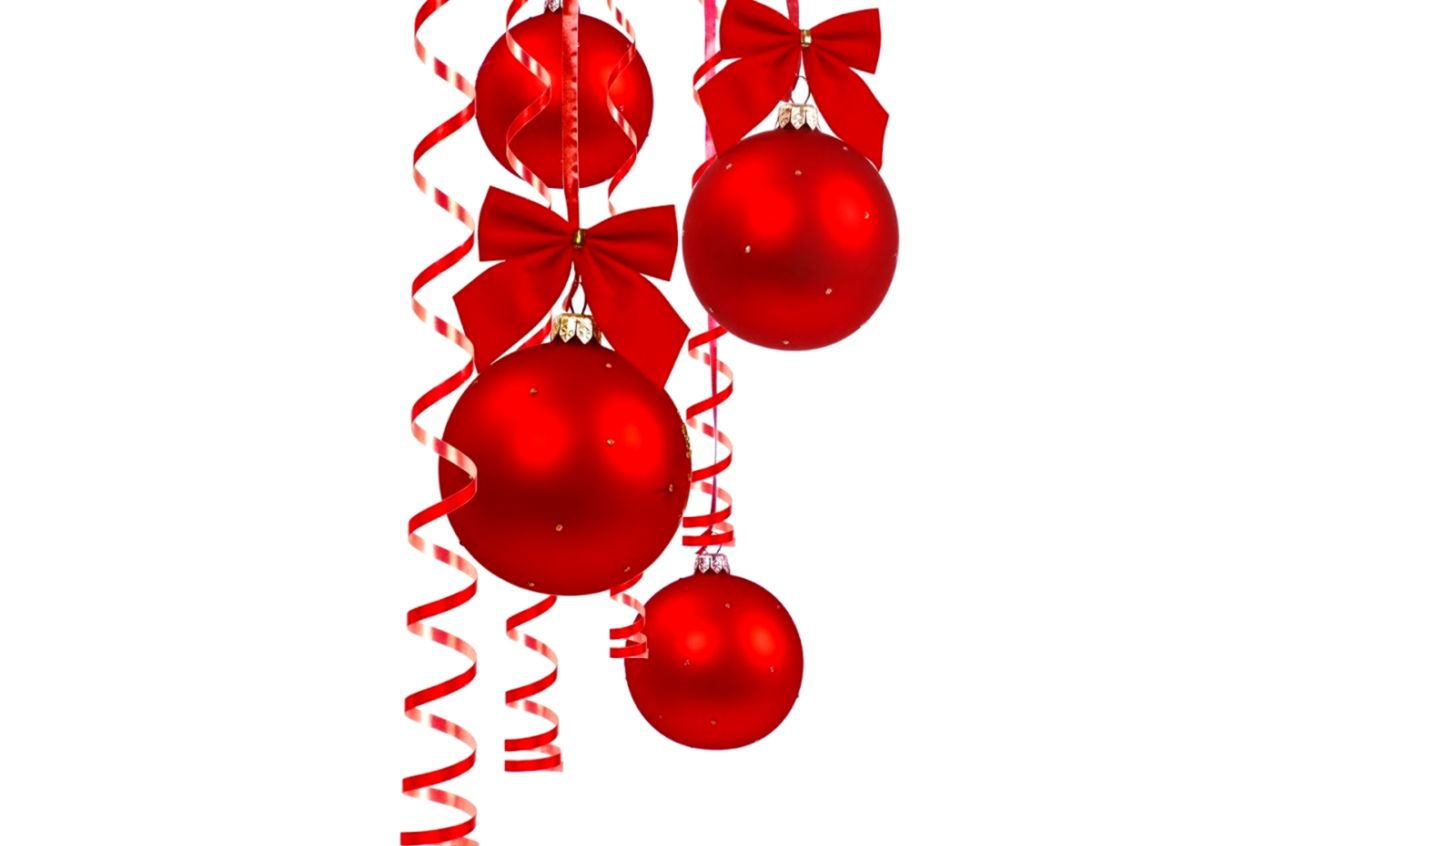 Christmas Images Free Clip Art.Christmas Party Clipart Wallpapers Dom Wallpapers